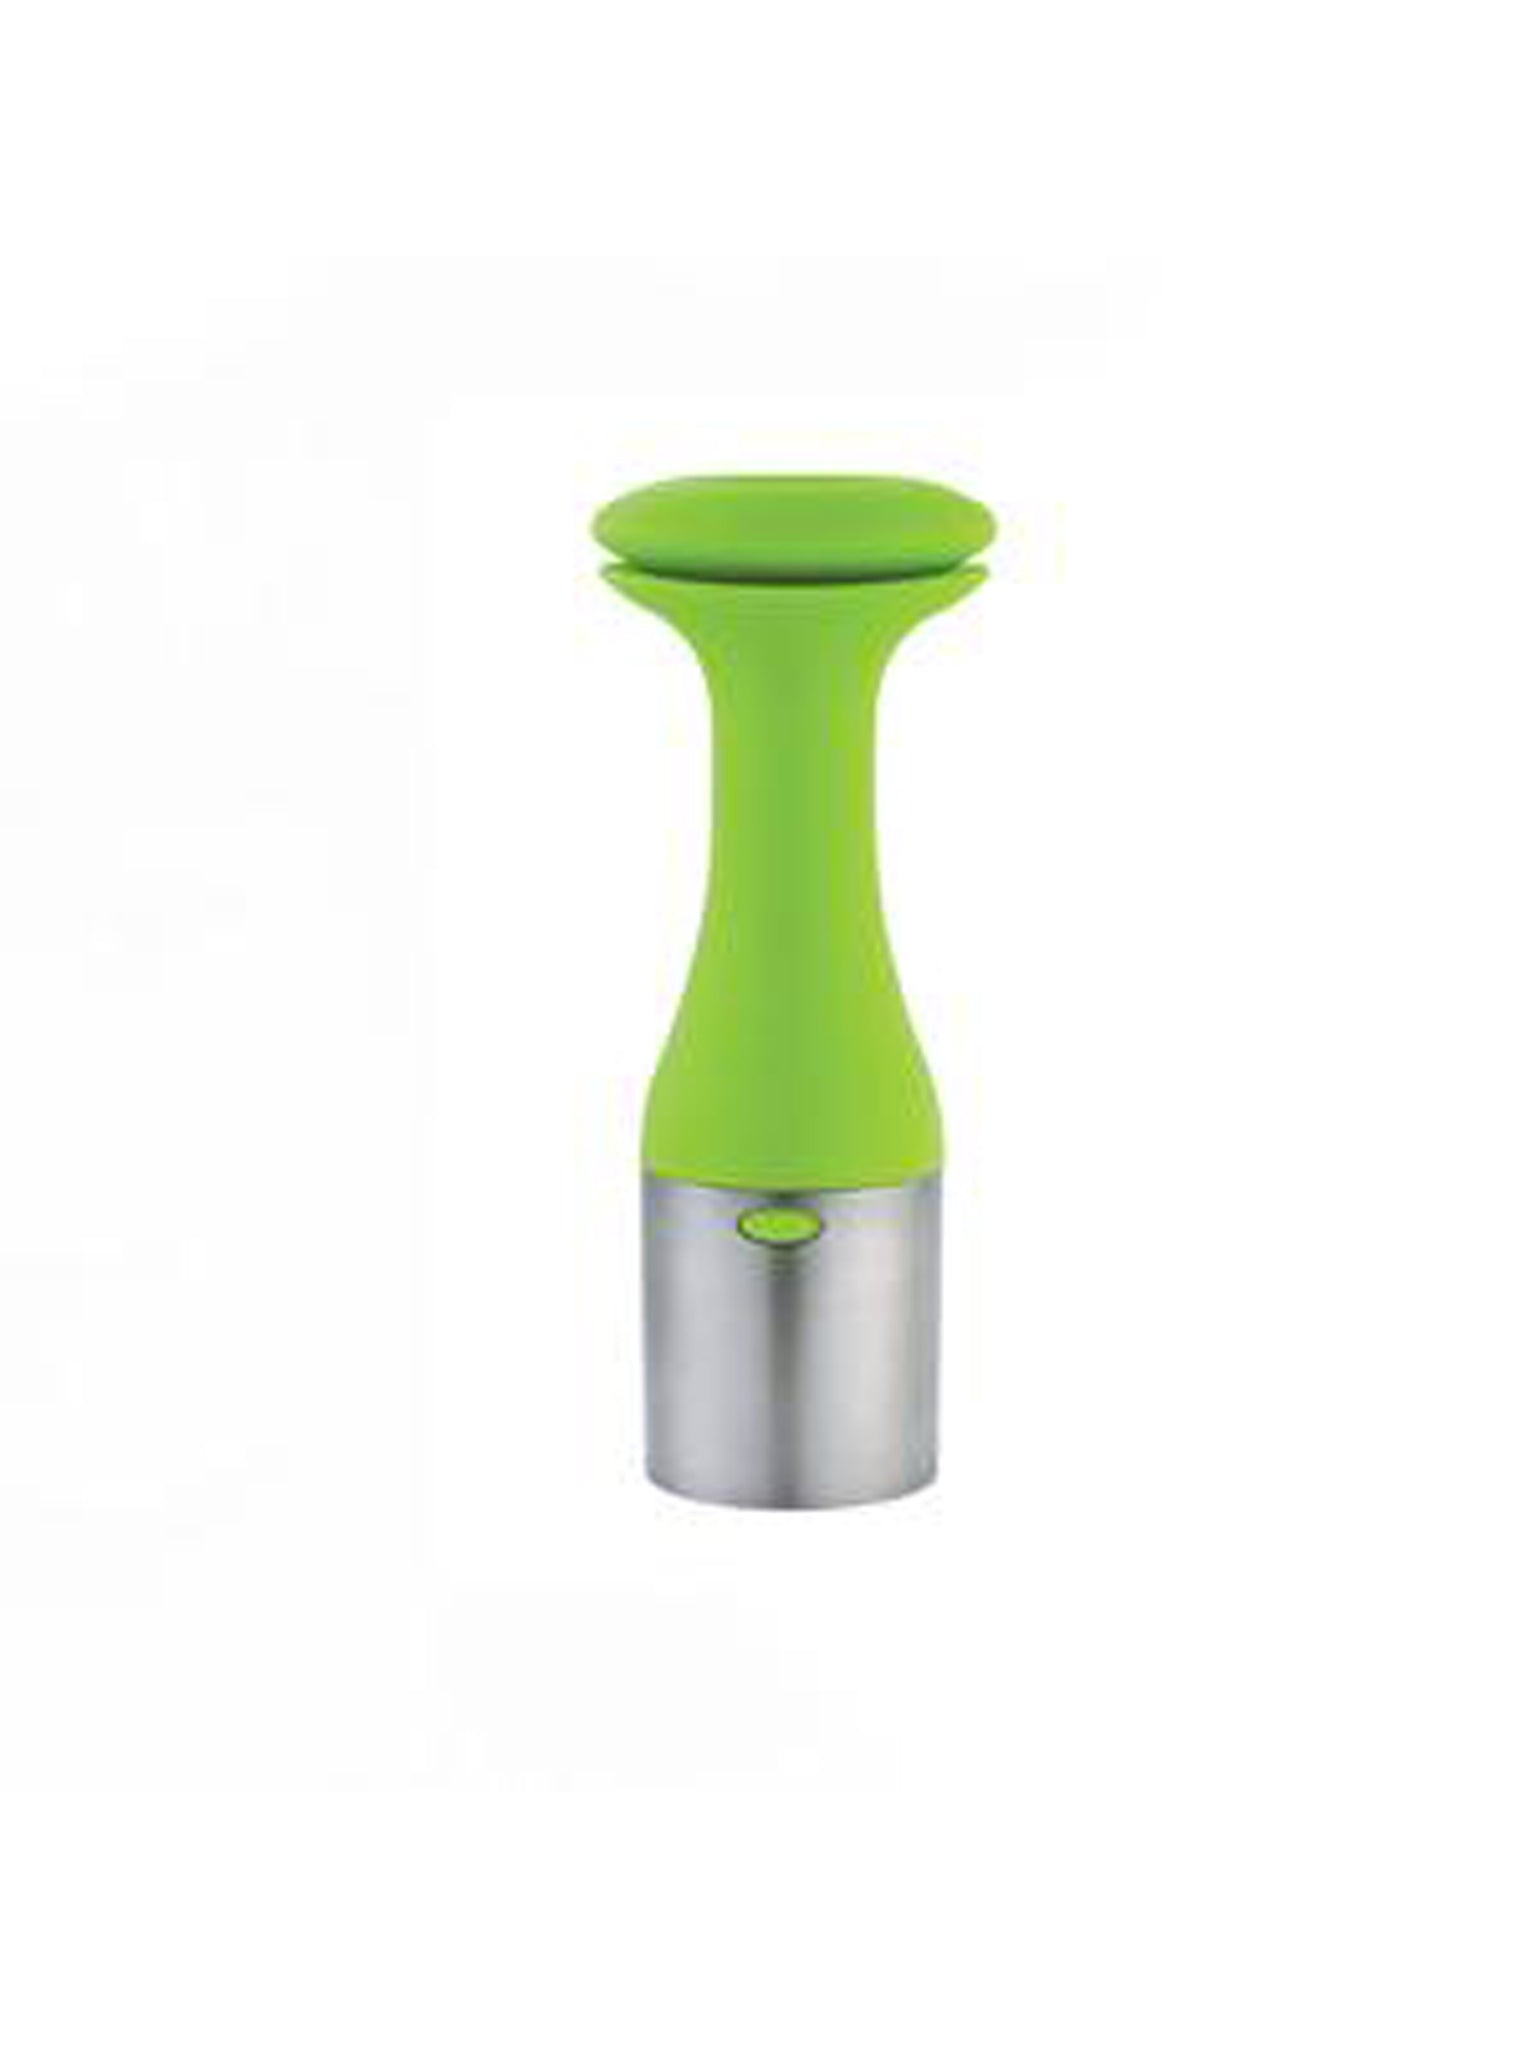 Ice Cream Scoop and Stack - Green